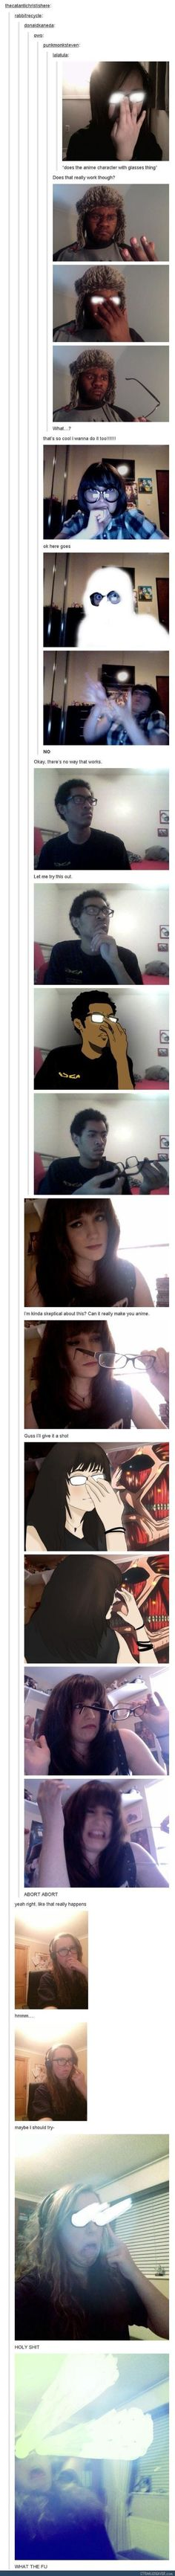 Omg... XD the anime glasses thing. So funny XD